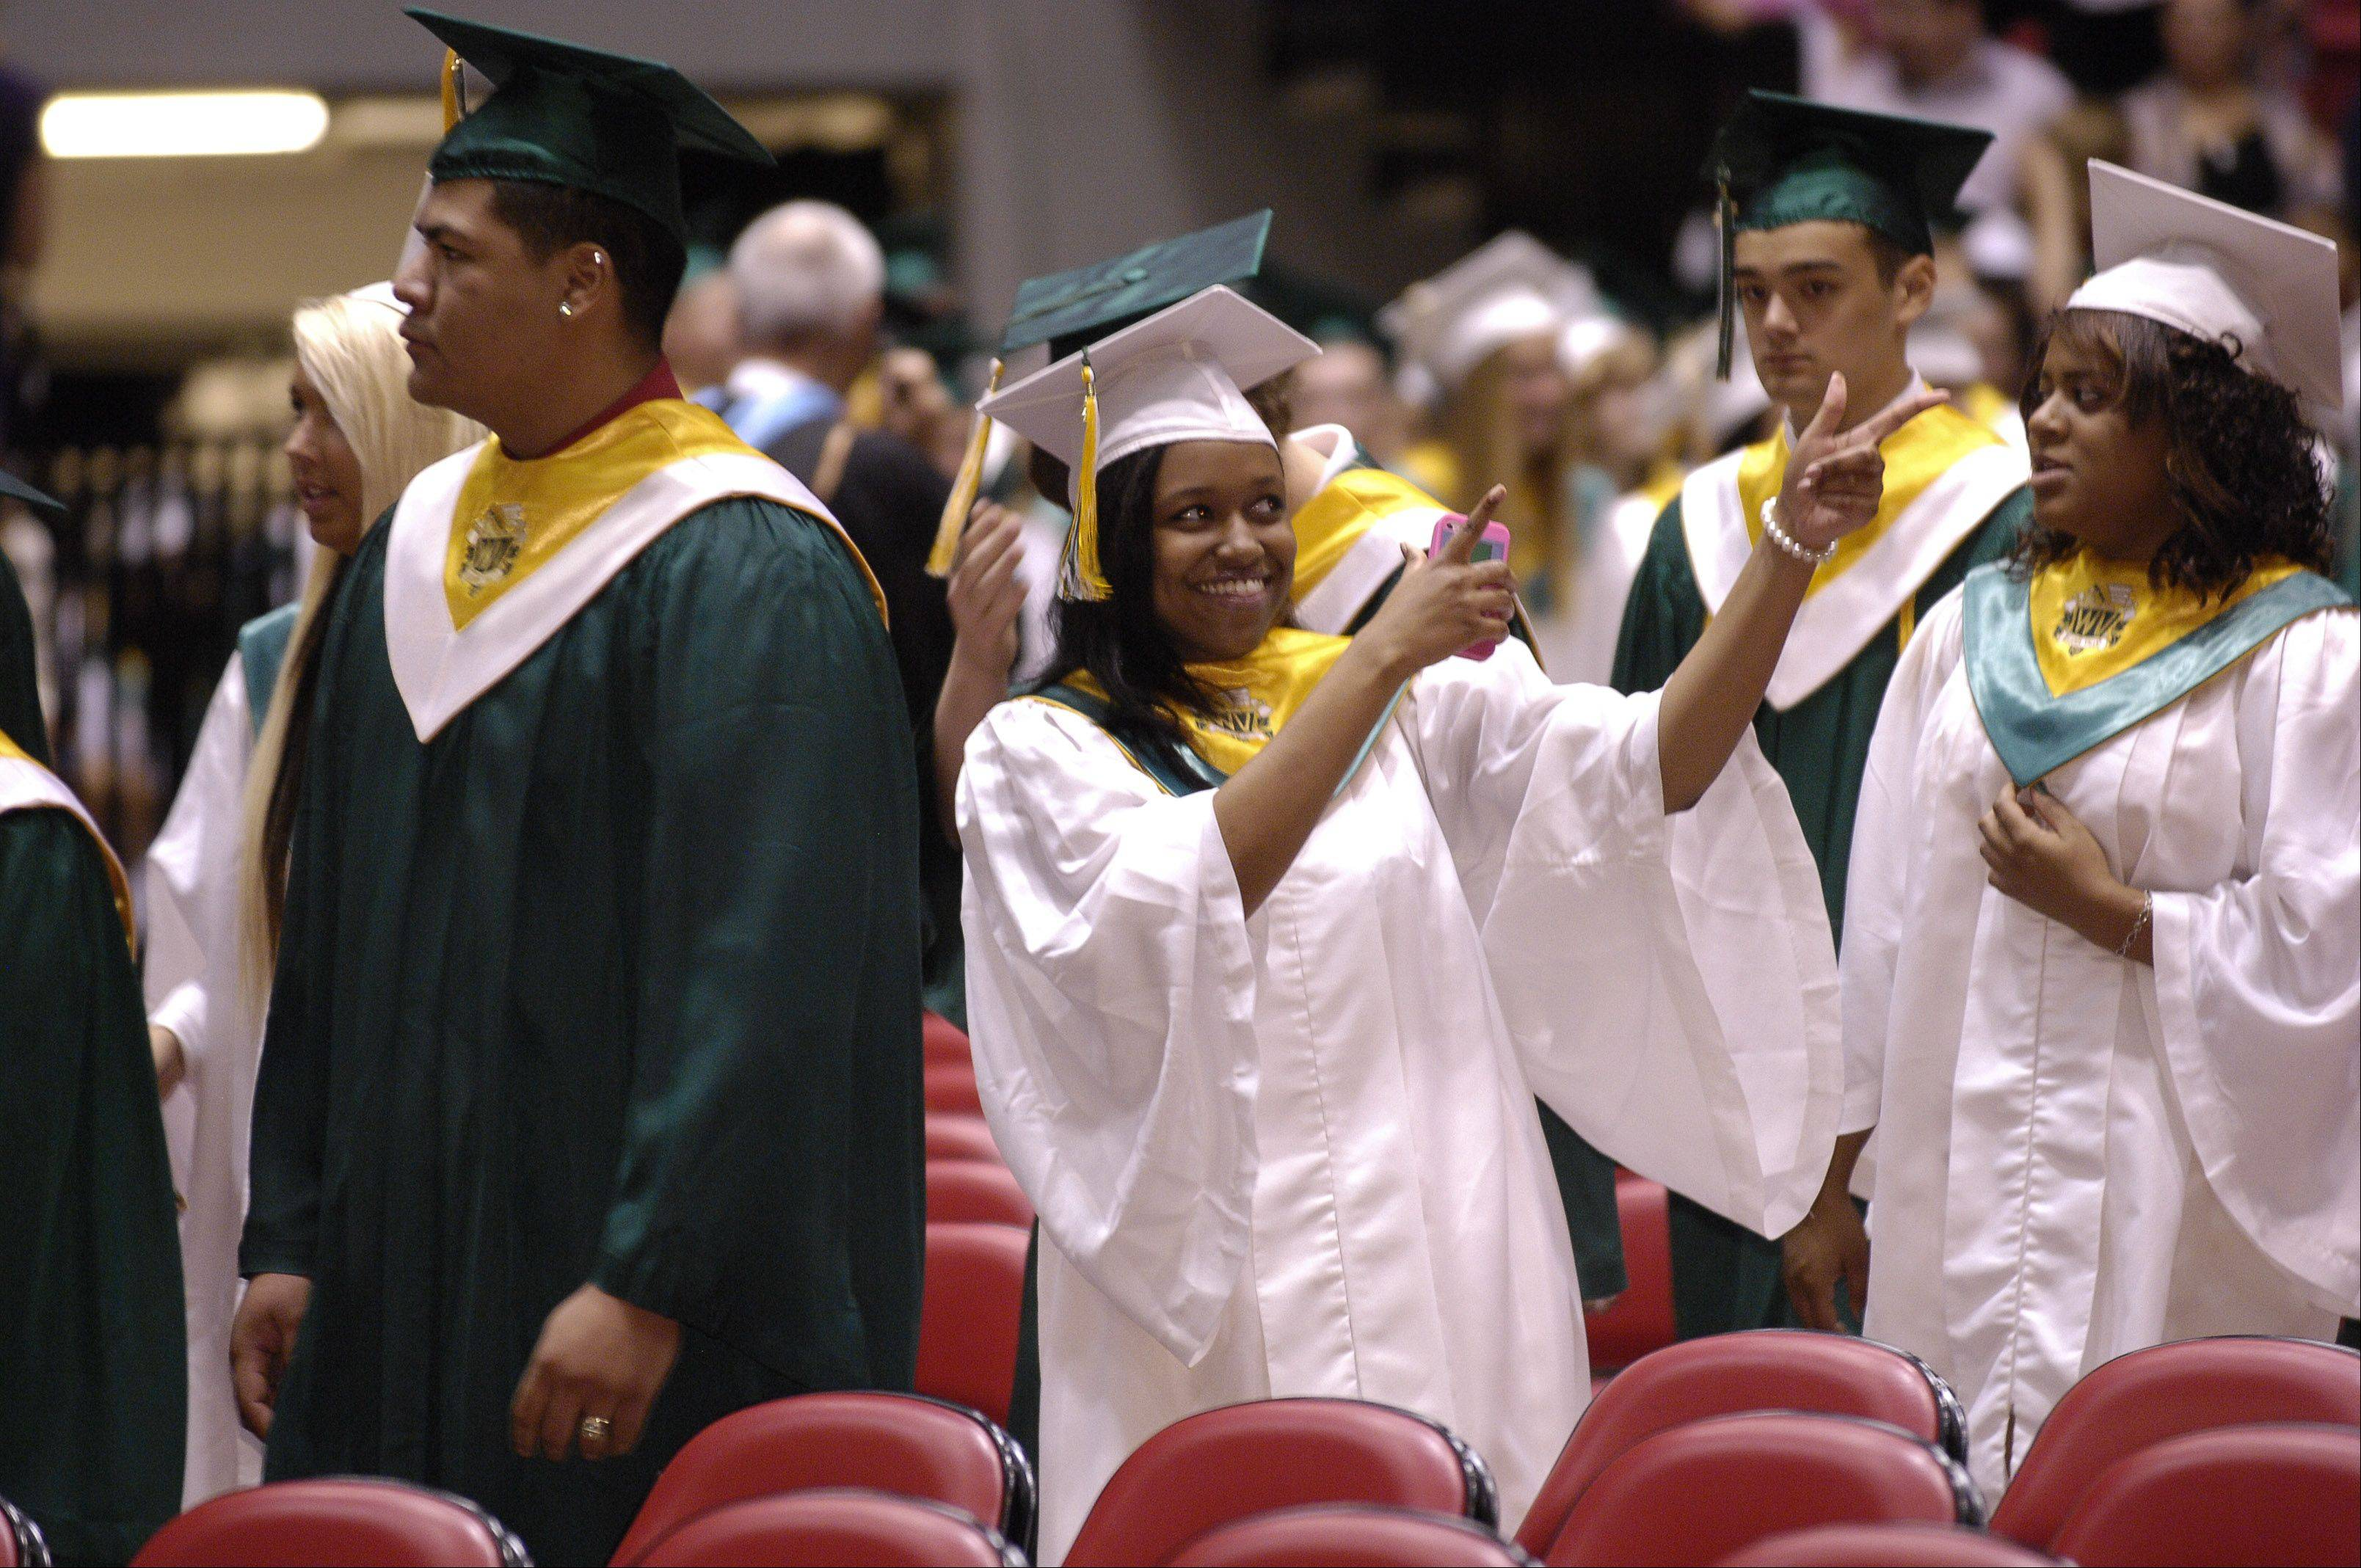 Waubonsie Valley High School held its graduation ceremony Sunday in DeKalb at NIU's Convocation Center.